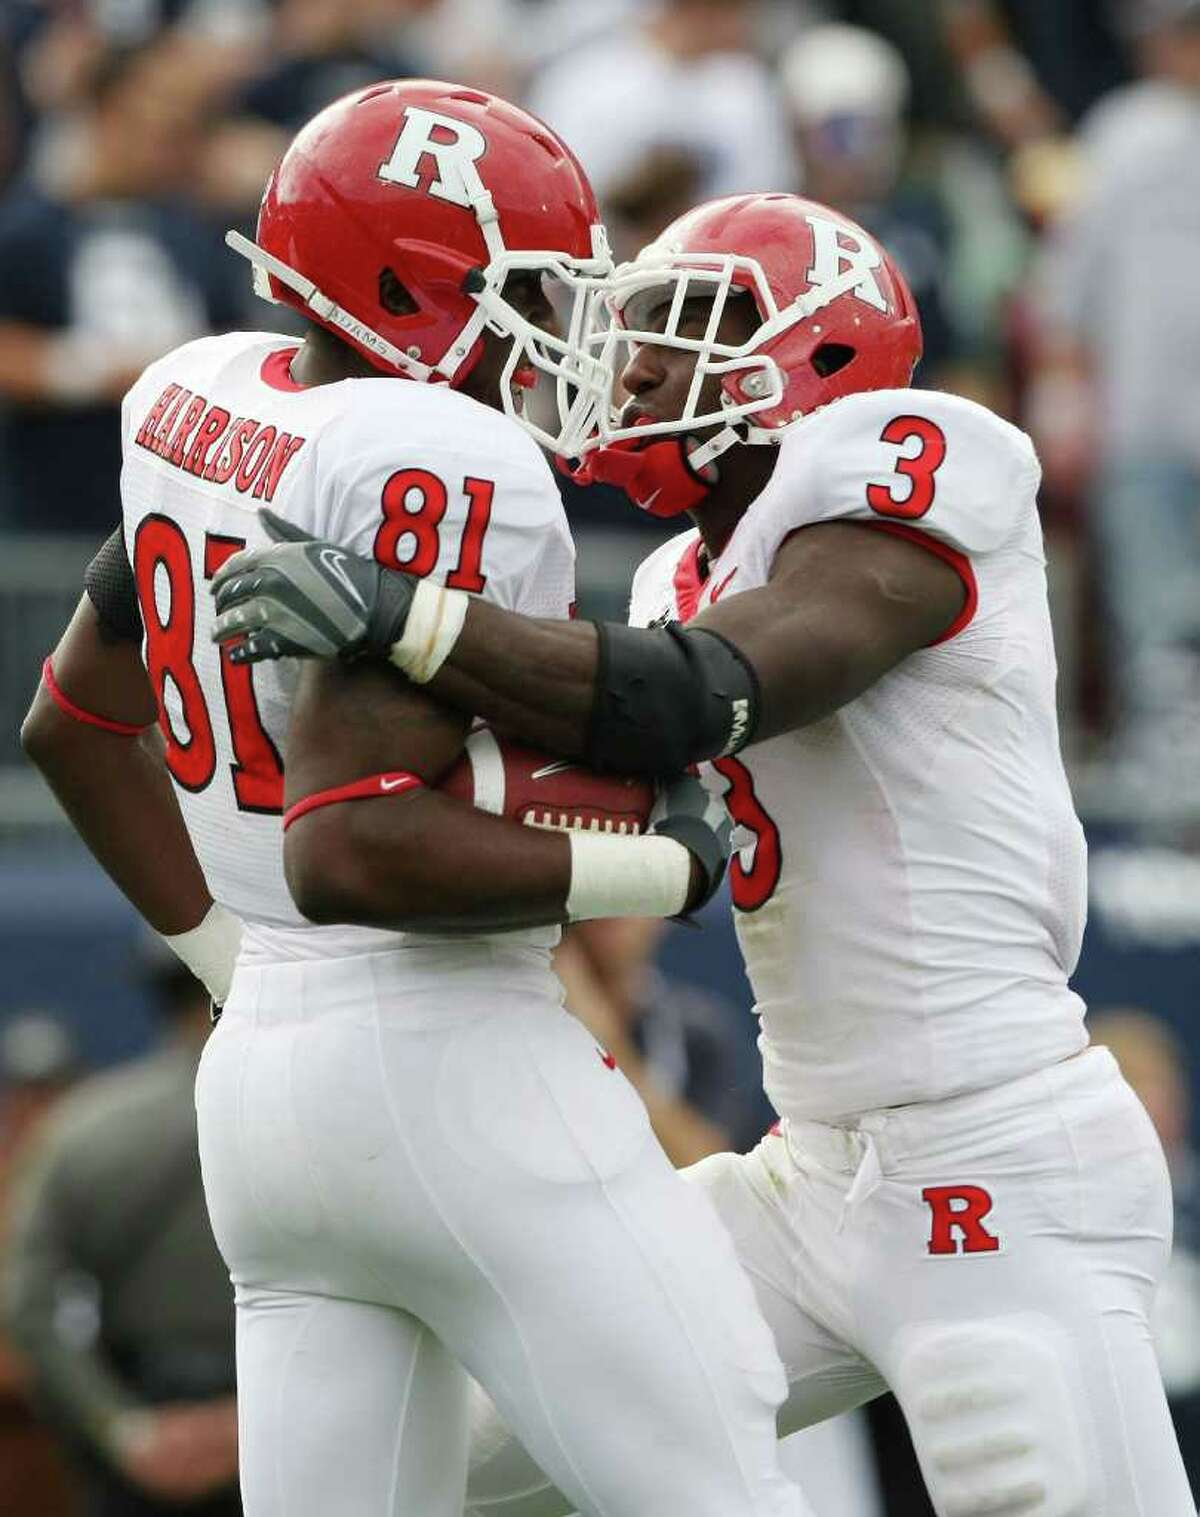 EAST HARTFORD, CT - OCTOBER 31: Mark Harrison #81 of the Rutgers Scarlet Knights celebrates his touchdown with teammate Shamar Graves #3 in the second half against the Connecticut Huskies on October 31, 2009 at Rentschler Field in East Hartford, Connecticut. (Photo by Elsa/Getty Images) *** Local Caption *** Mark Harrison;Shamar Graves